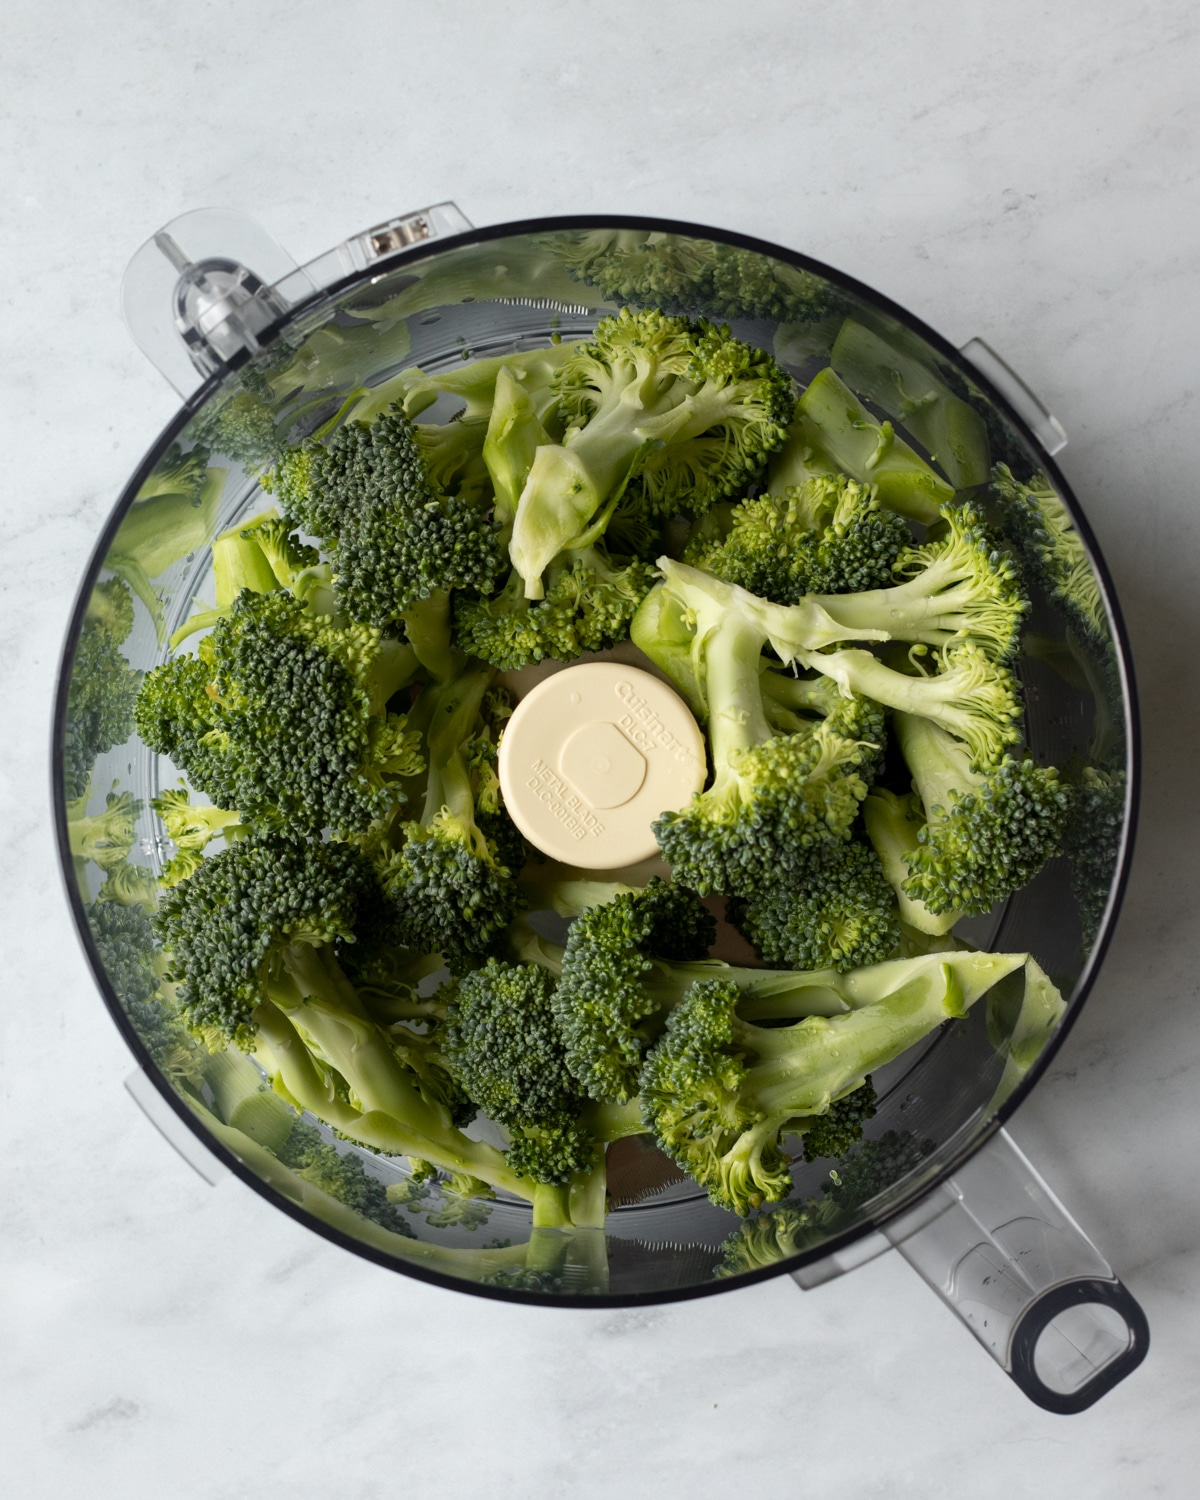 food processor bowl filled with broccoli florets